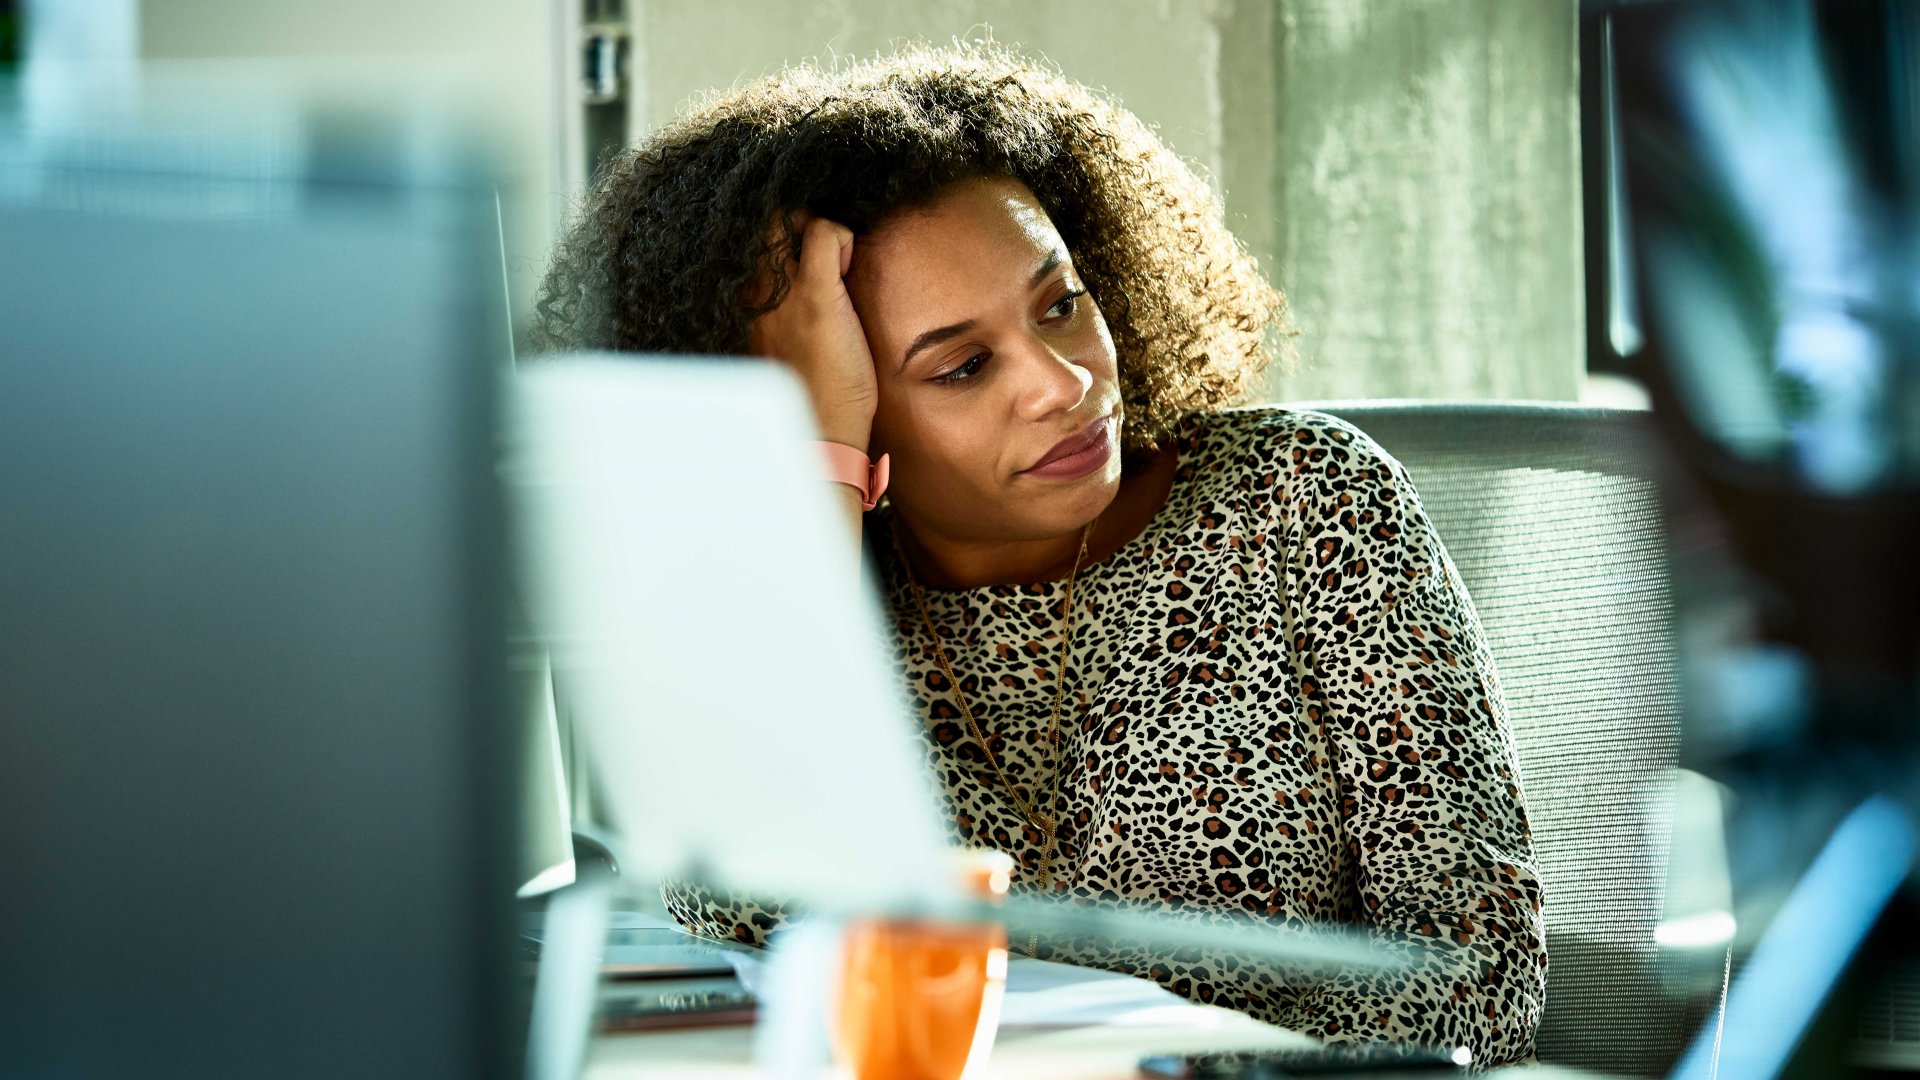 Do Managers Need to Hide Their Stress From Employees?